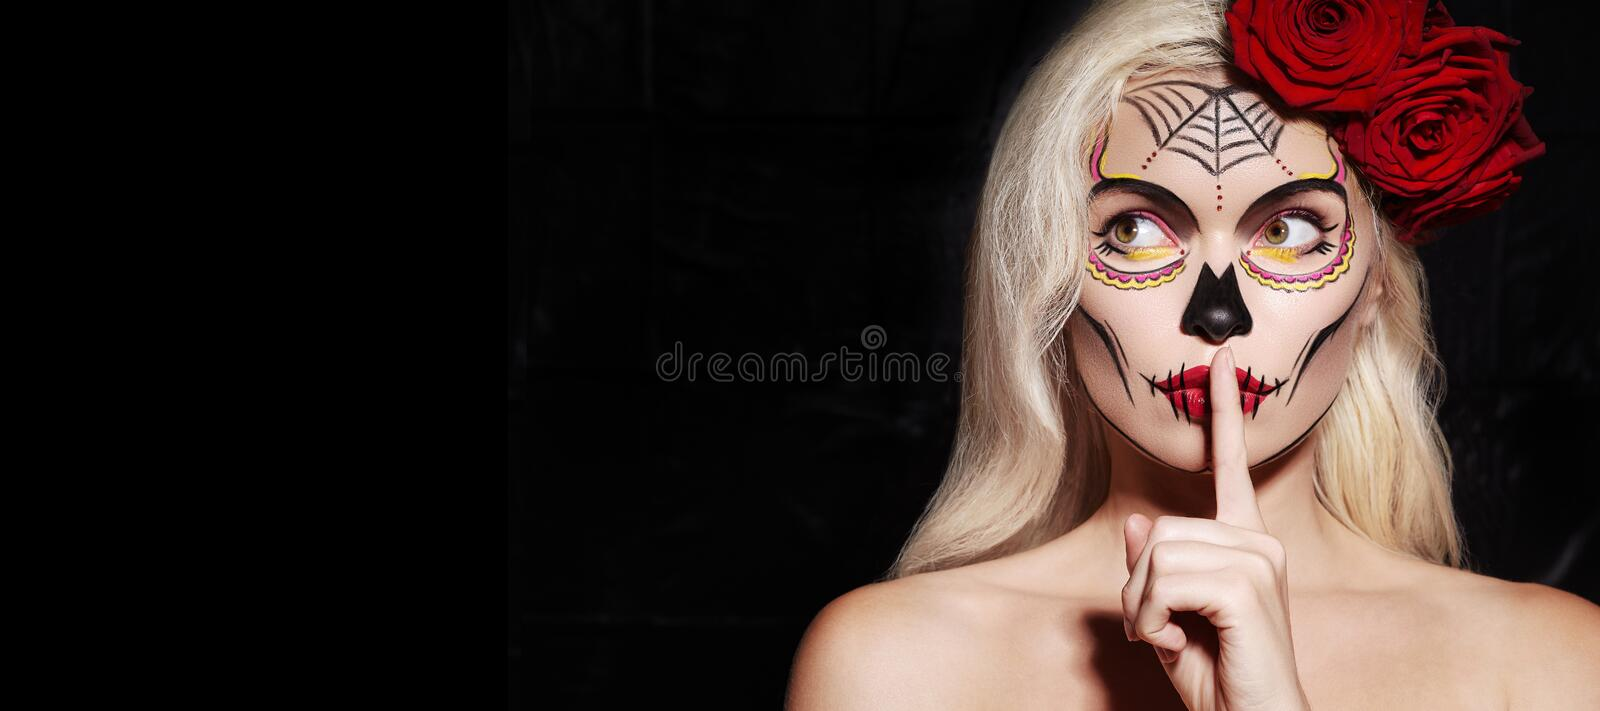 Beautiful Halloween Make-Up Style. Blond Model Wear Sugar Skull Makeup with Red Roses. Santa Muerte concept stock photos